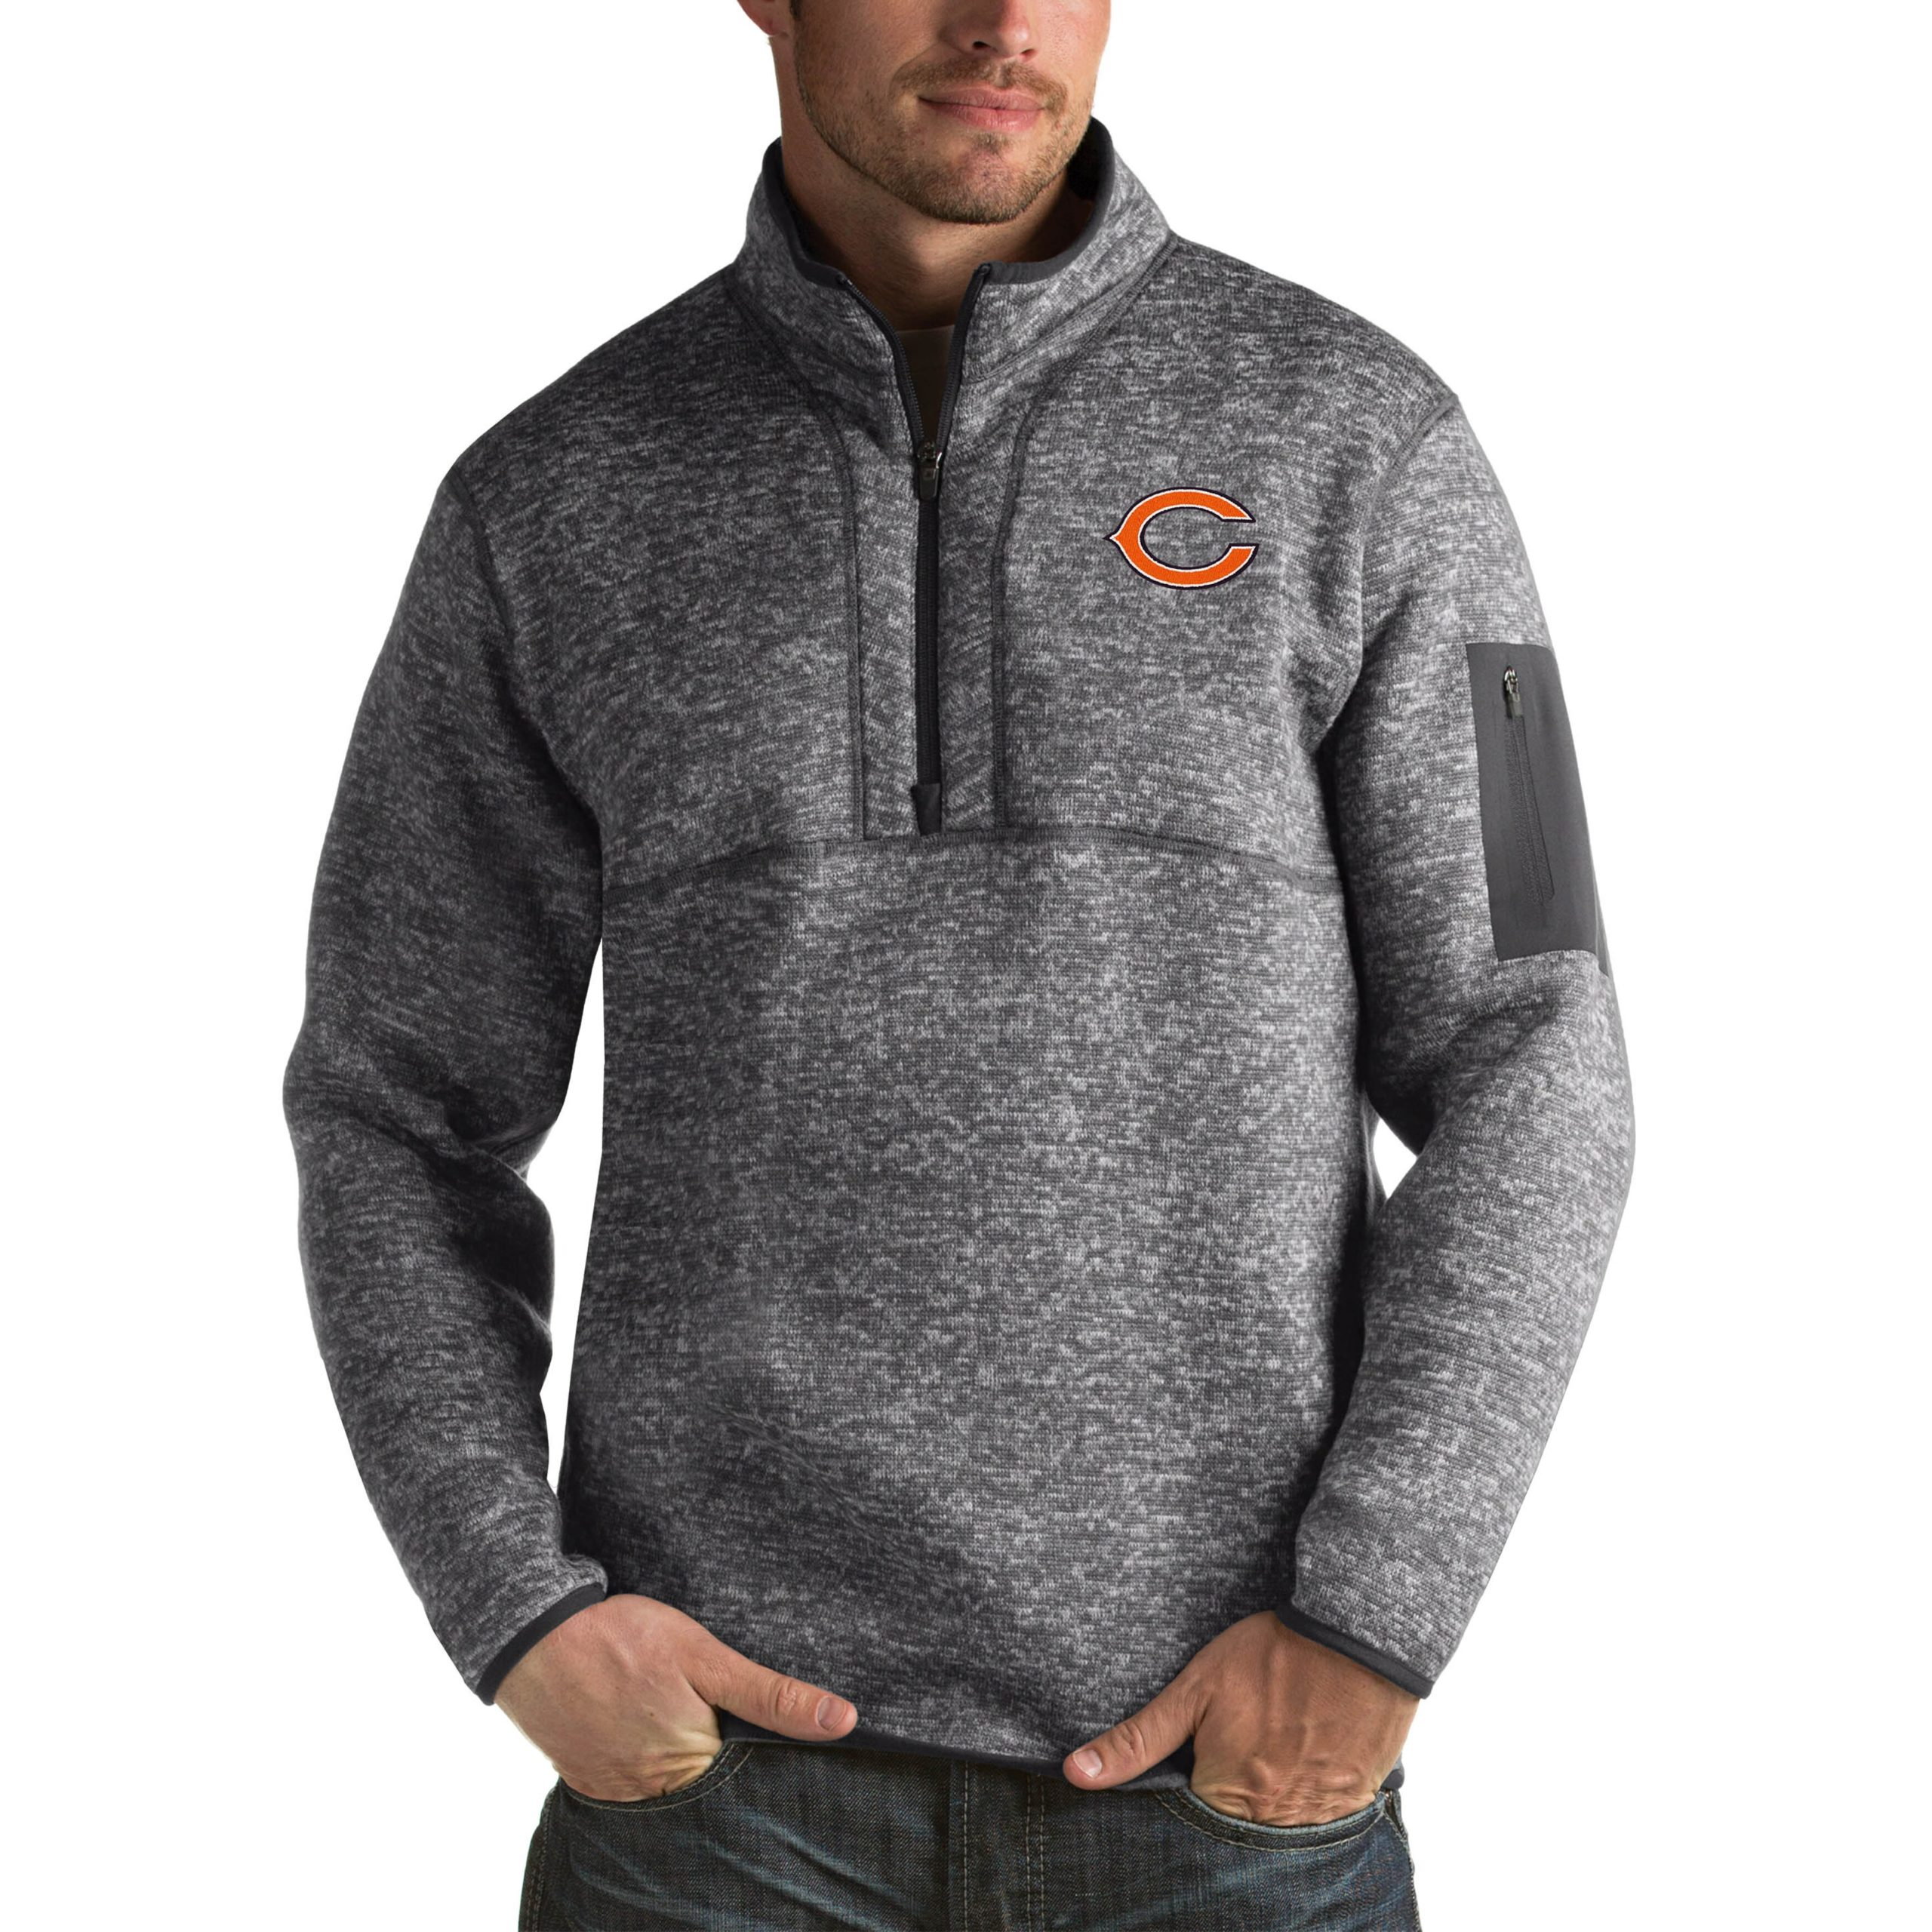 Chicago Bears Antigua Fortune Big & Tall Quarter-Zip Pullover Jacket - Charcoal